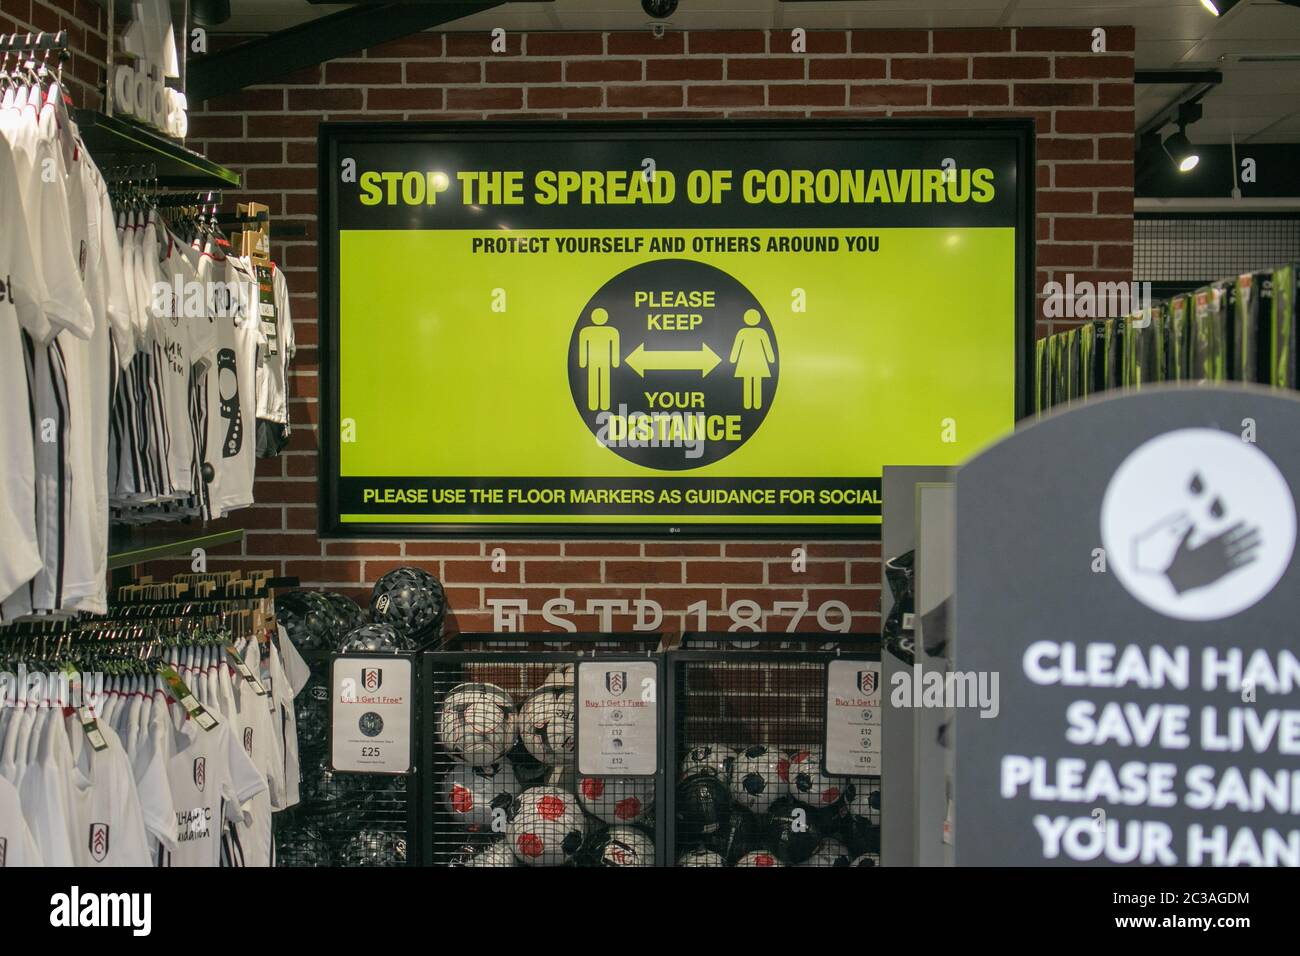 FULHAM, LONDON UK. 19 June 2020. Social distancing precautions at The Fulham Football Club store at Craven Cottage  against Covid-19  as the English championships prepares to resume play  tomorrow (Saturday 20 June)  more than 3 months after it was suspended due to the Coronavirus Covid-19 pandemic. Credit: amer ghazzal/Alamy Live News Stock Photo